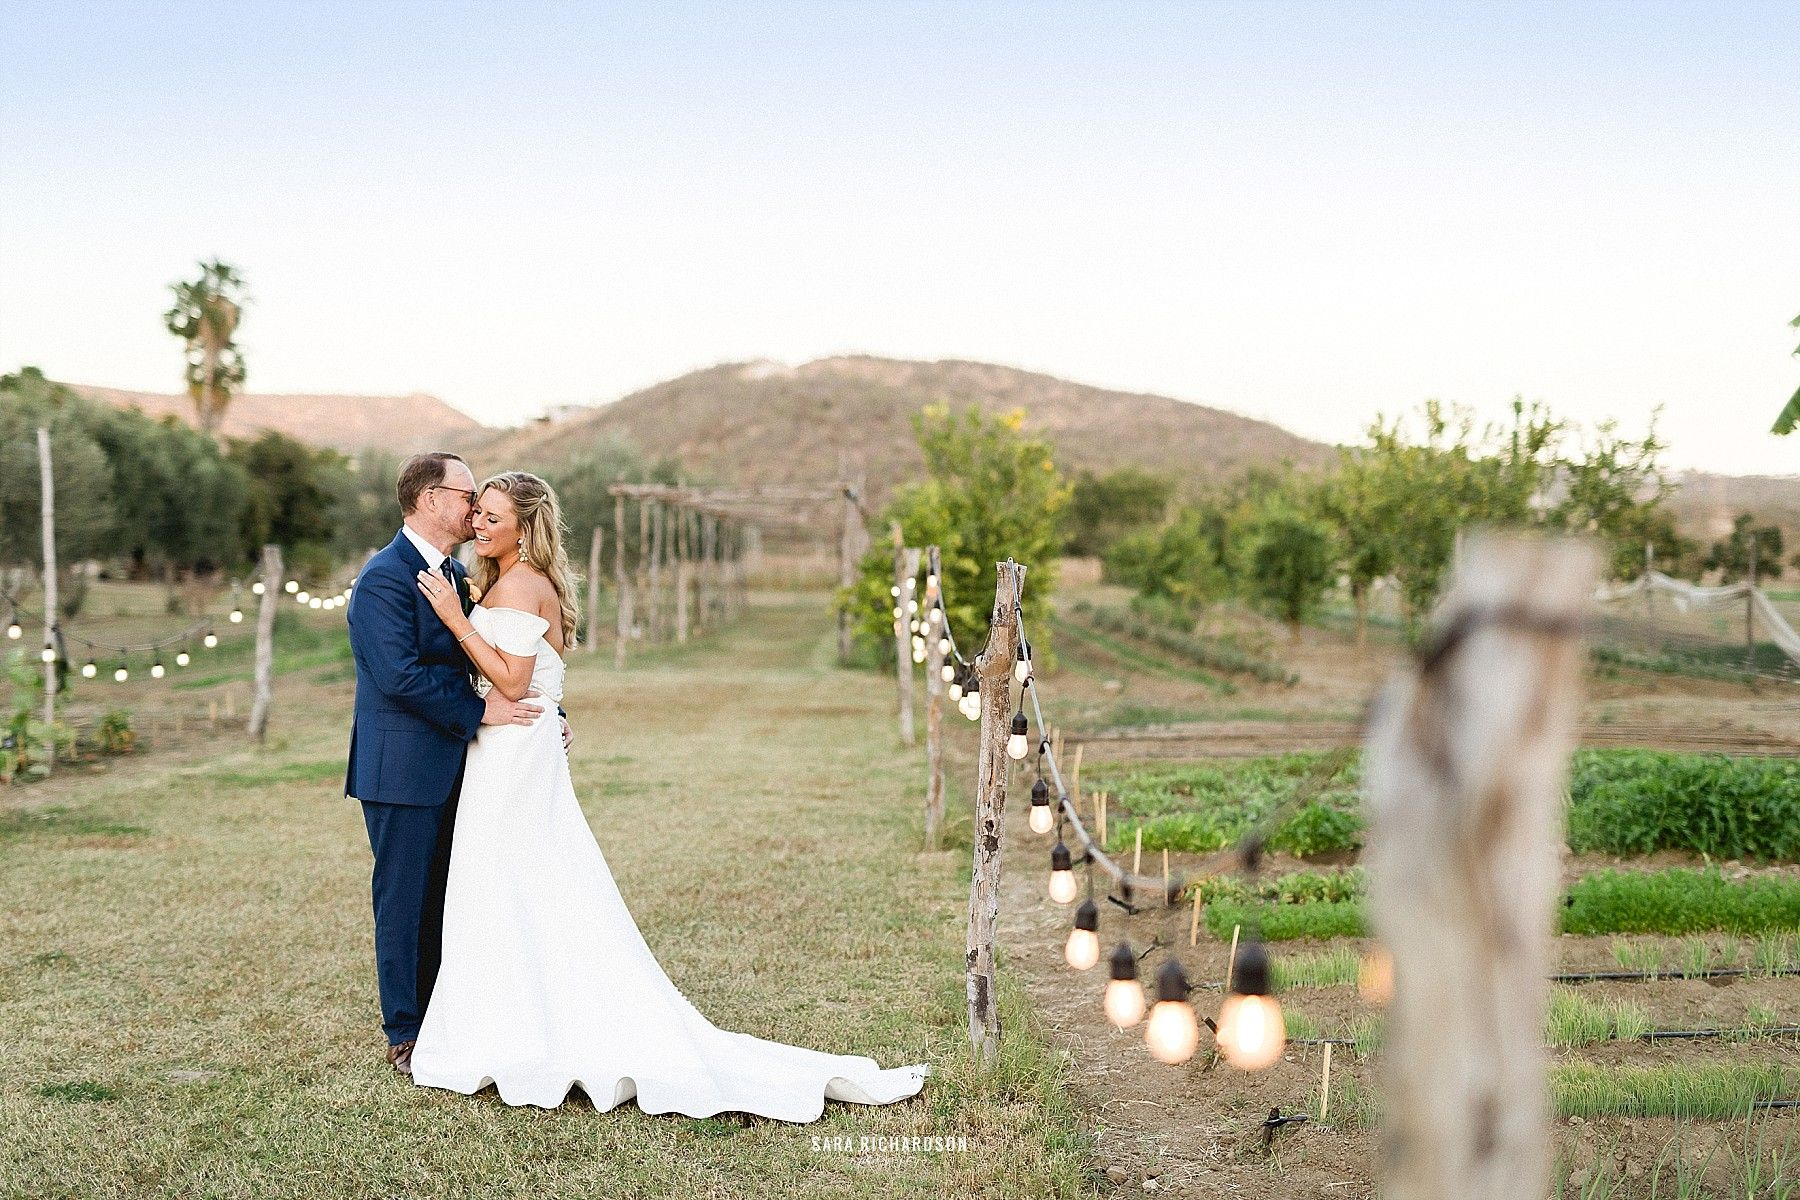 Bride and groom during their photo session. There is a time of day, where light is just perfect. This venue is in Destination Los CAbos Mexico.